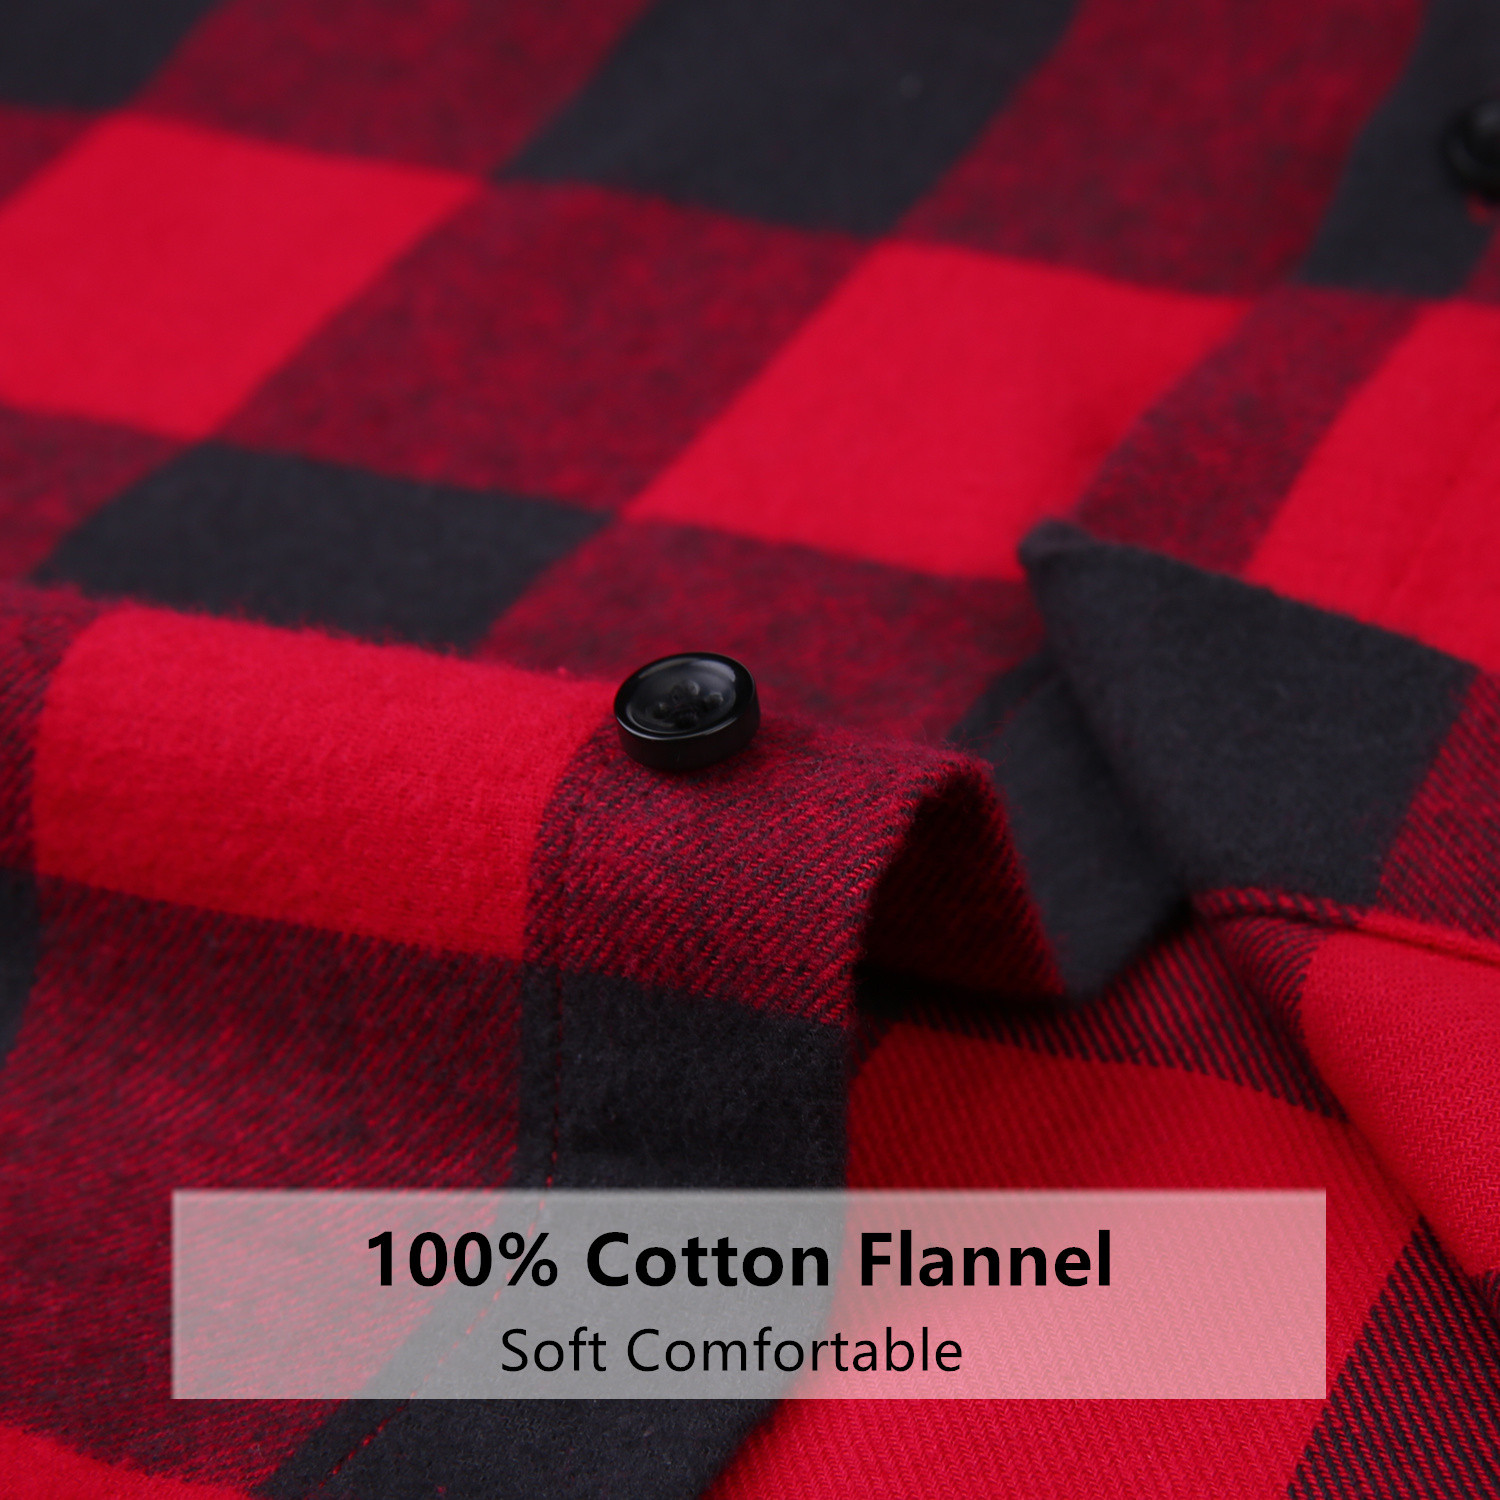 100% Cotton Flannel Men's Plaid Shirt Slim Fit Spring Autumn Male Brand Casual Long Sleeved Shirts Soft Comfortable 4XL 2